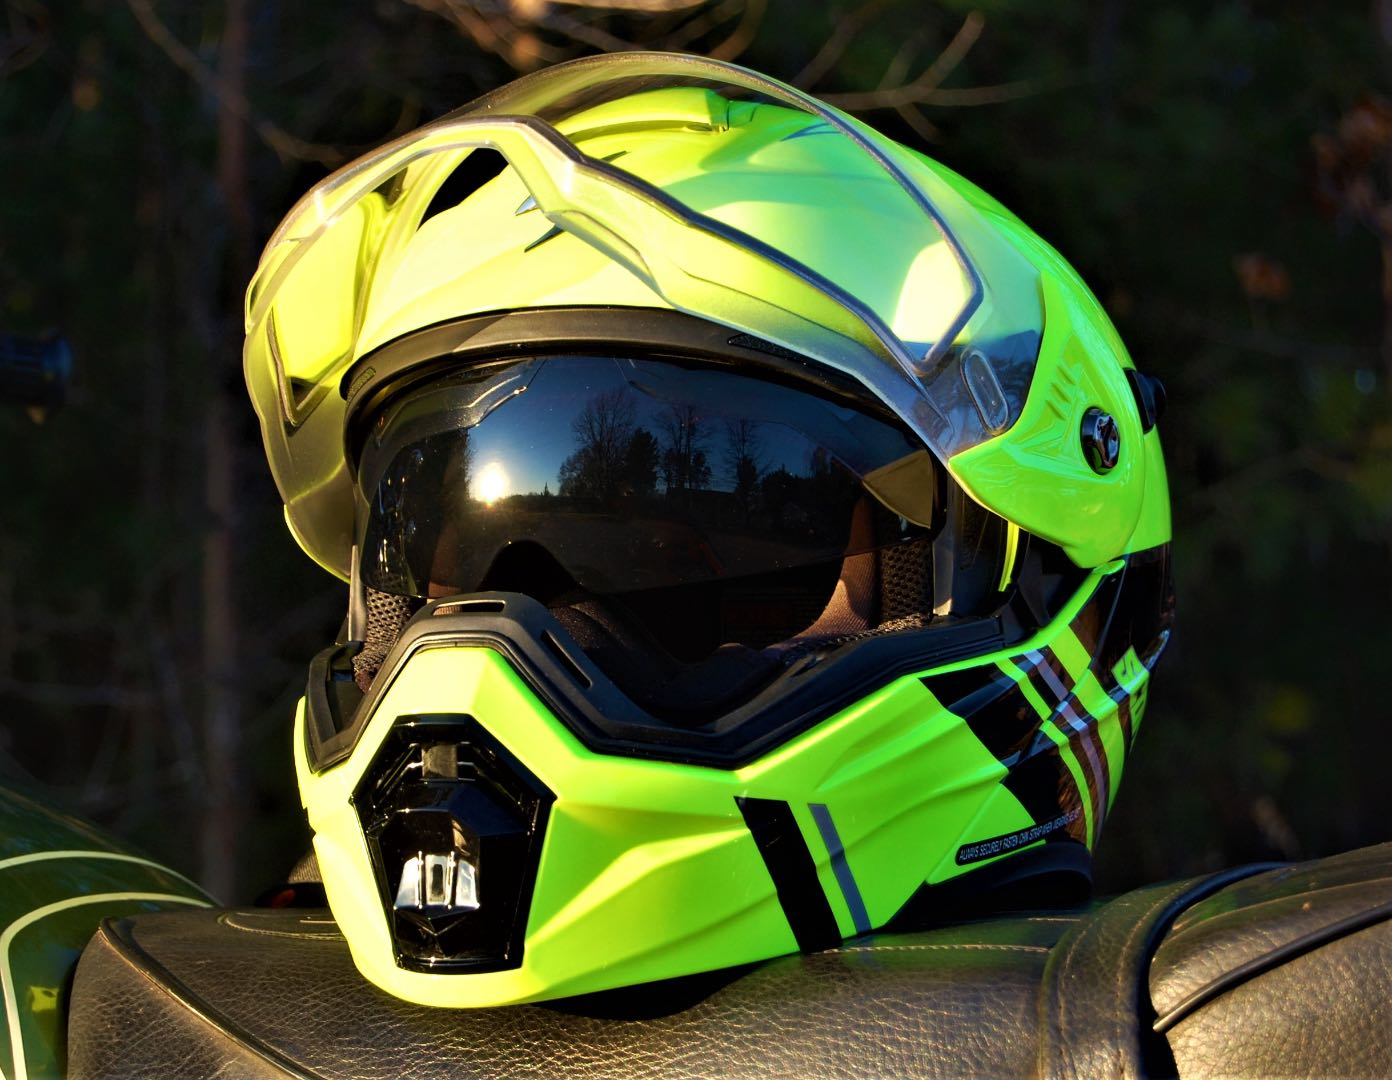 Scorpion EXO-AT950 Teton Modular Helmet test